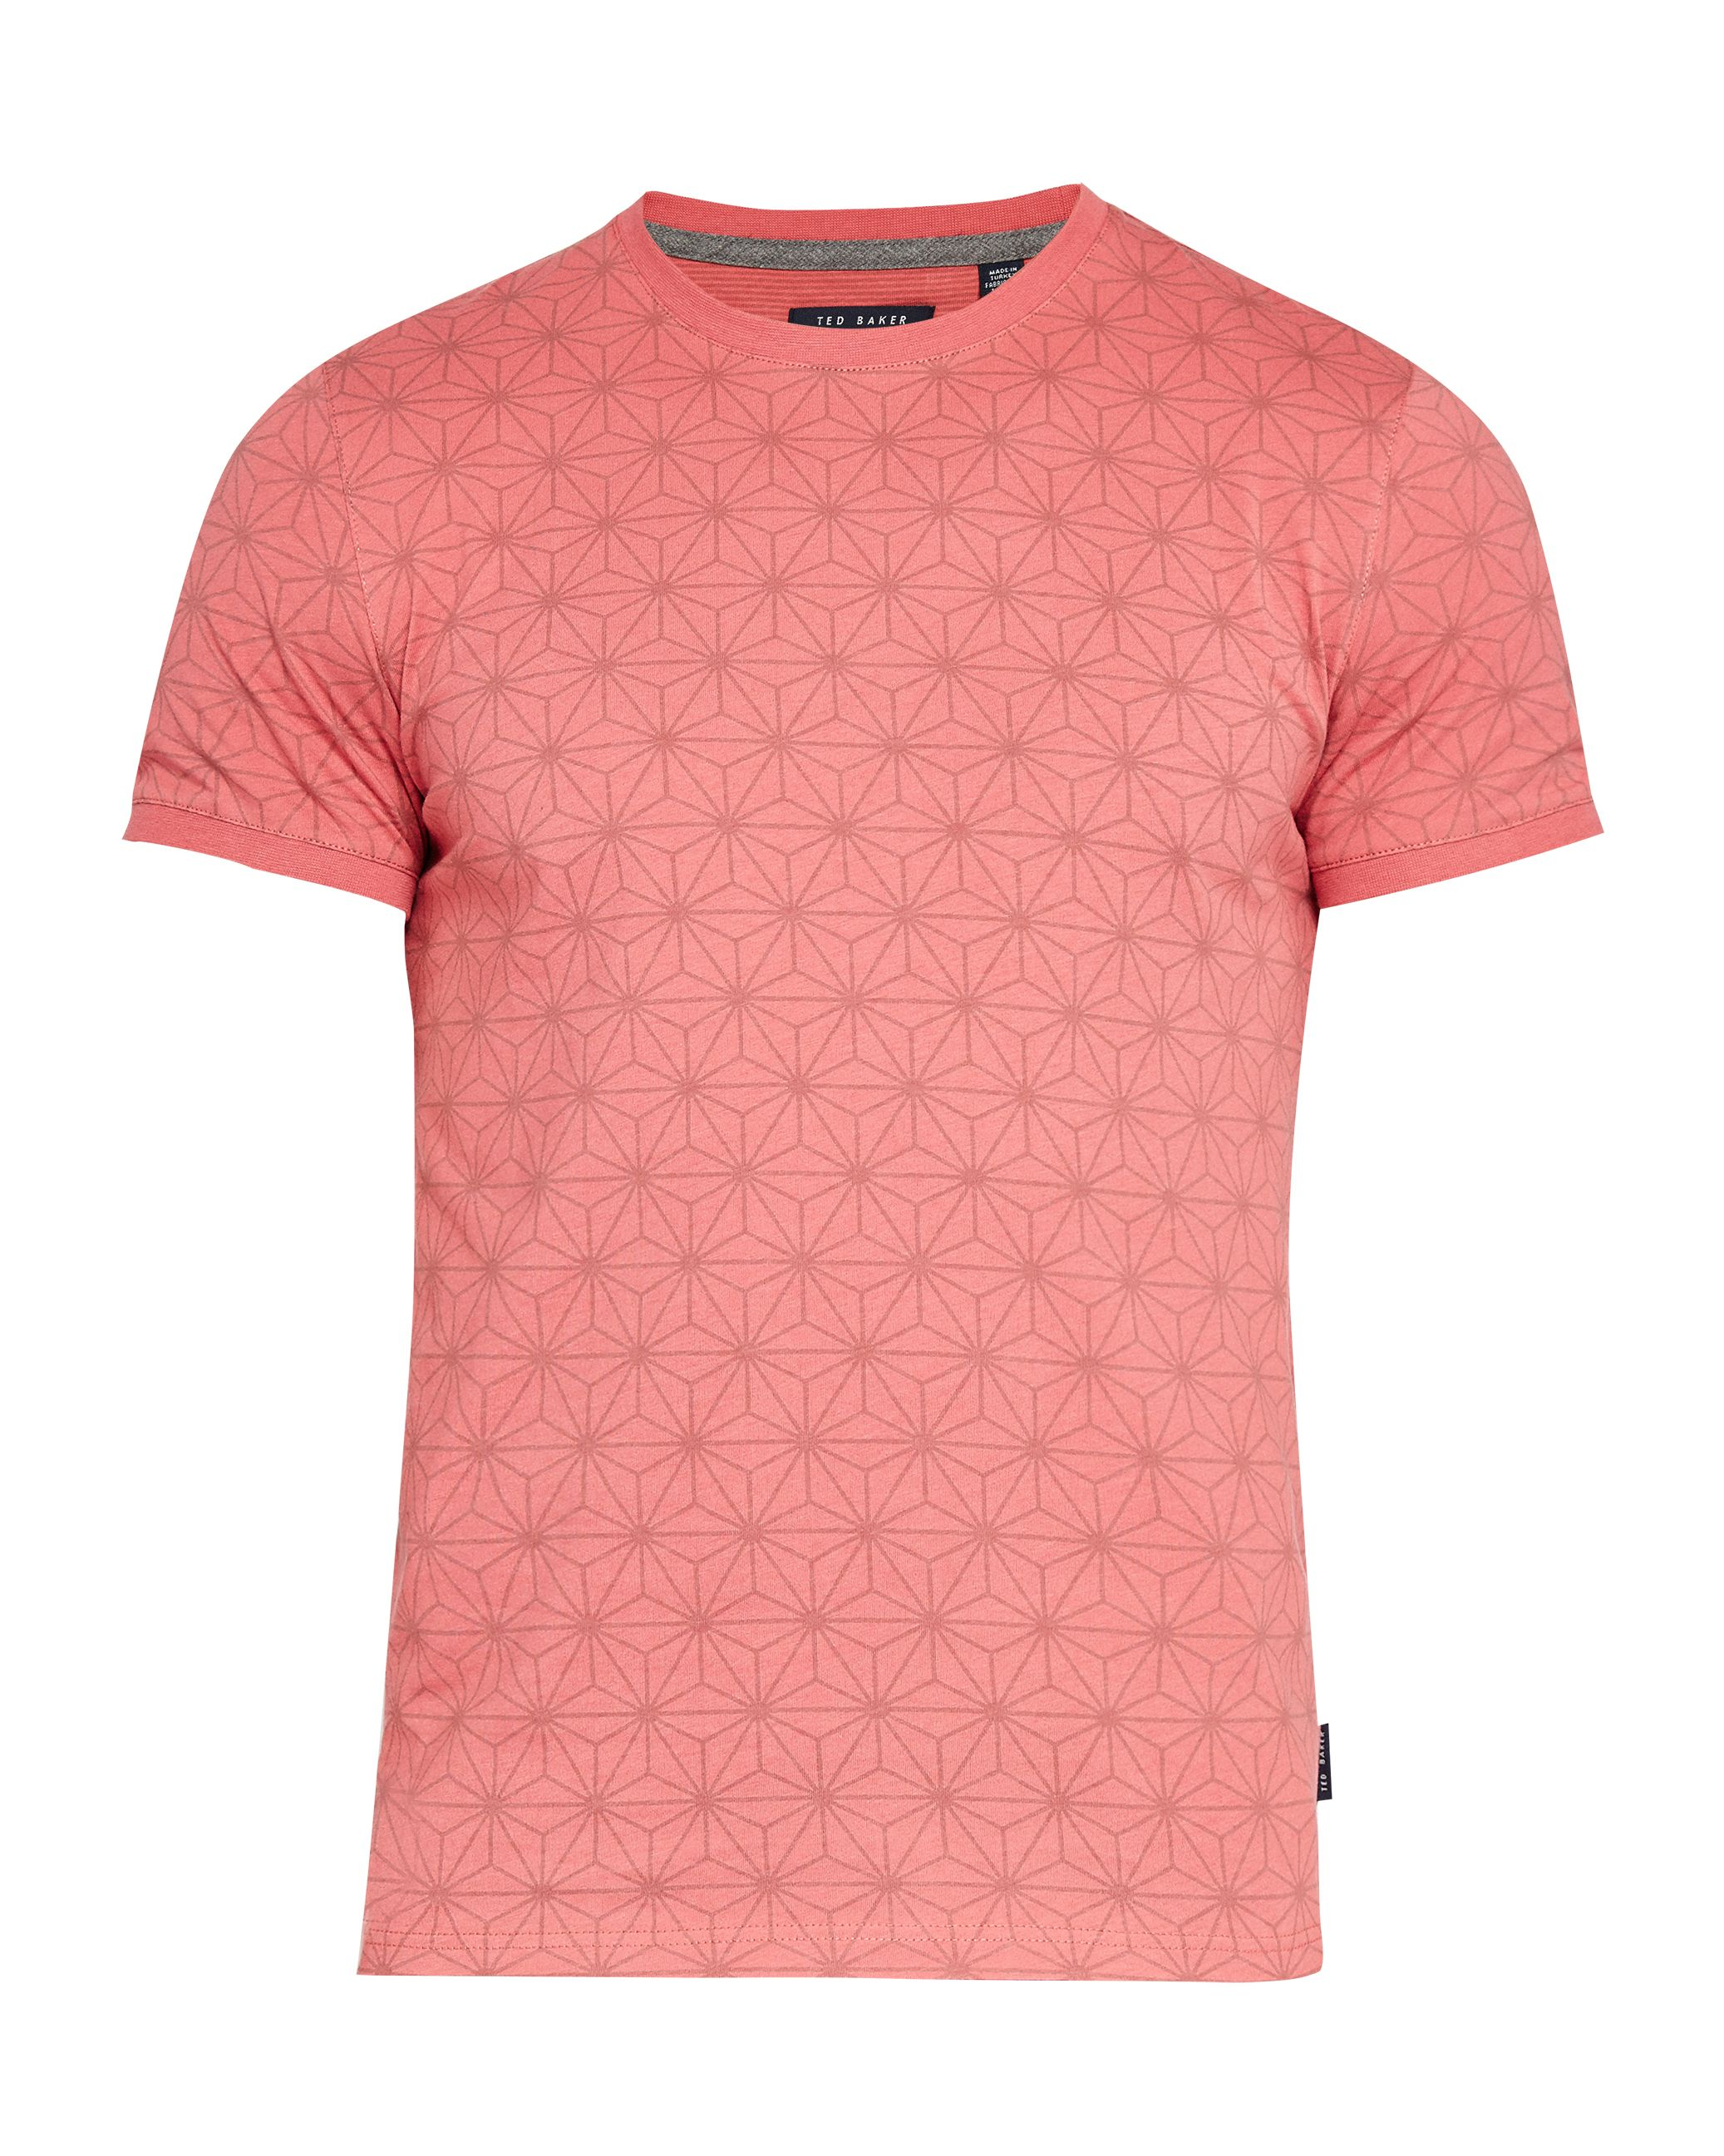 Men's Ted Baker Mitchal All Over Printed T-Shirt, Pink